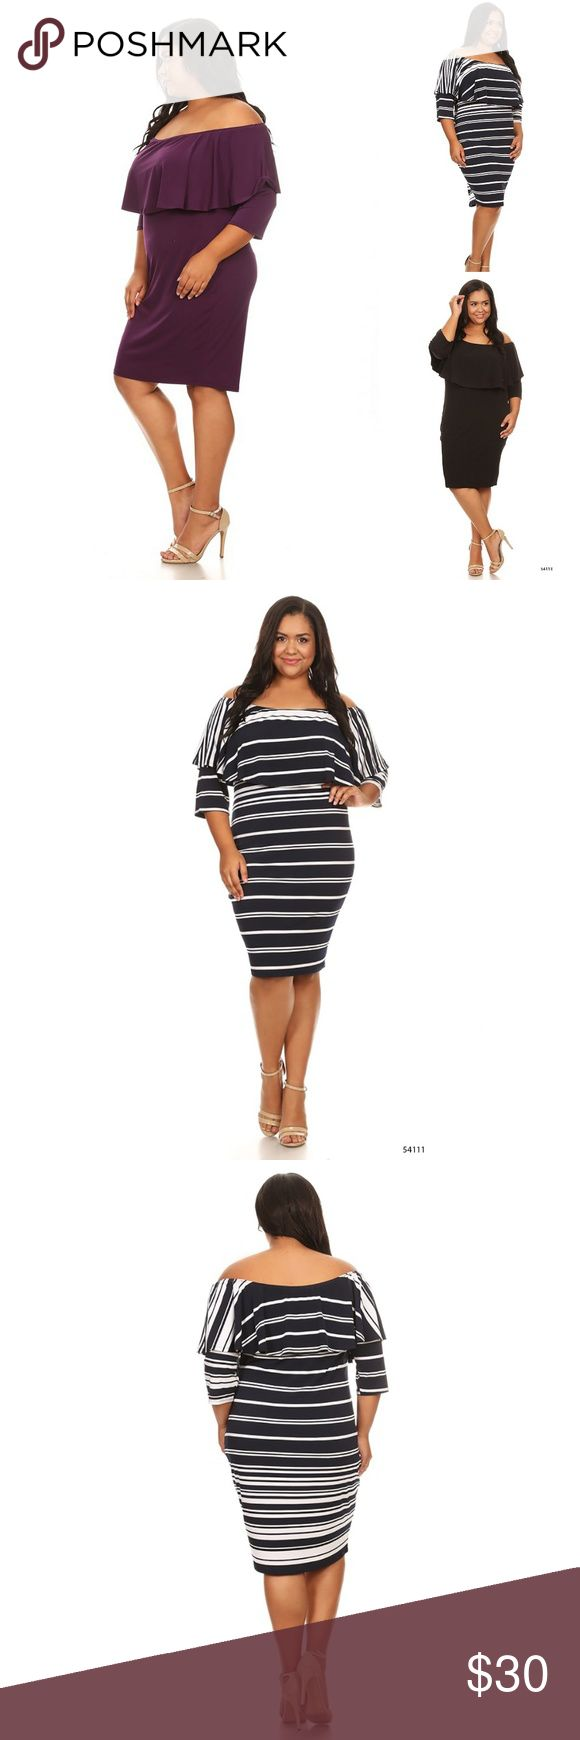 """Plus Striped Curvy Ruffle Strapless Midi Dress Plus Size Black Ruffle Women's Midi Dress Casual Women's plus size dress featuring a ruffle accent and soft stretchy material.  Material is 94% polyester and 6% spandex  Approx. Measures 4XL Bust 25"""", Waist 23"""", Hips 28"""" 5XL Bust 26"""", Waist 24"""", Hips 29"""" 4XL Bust 27"""", Waist 25"""", Hips 30""""  Strapless midi dress, perfect for casual day or night out Dresses Midi"""